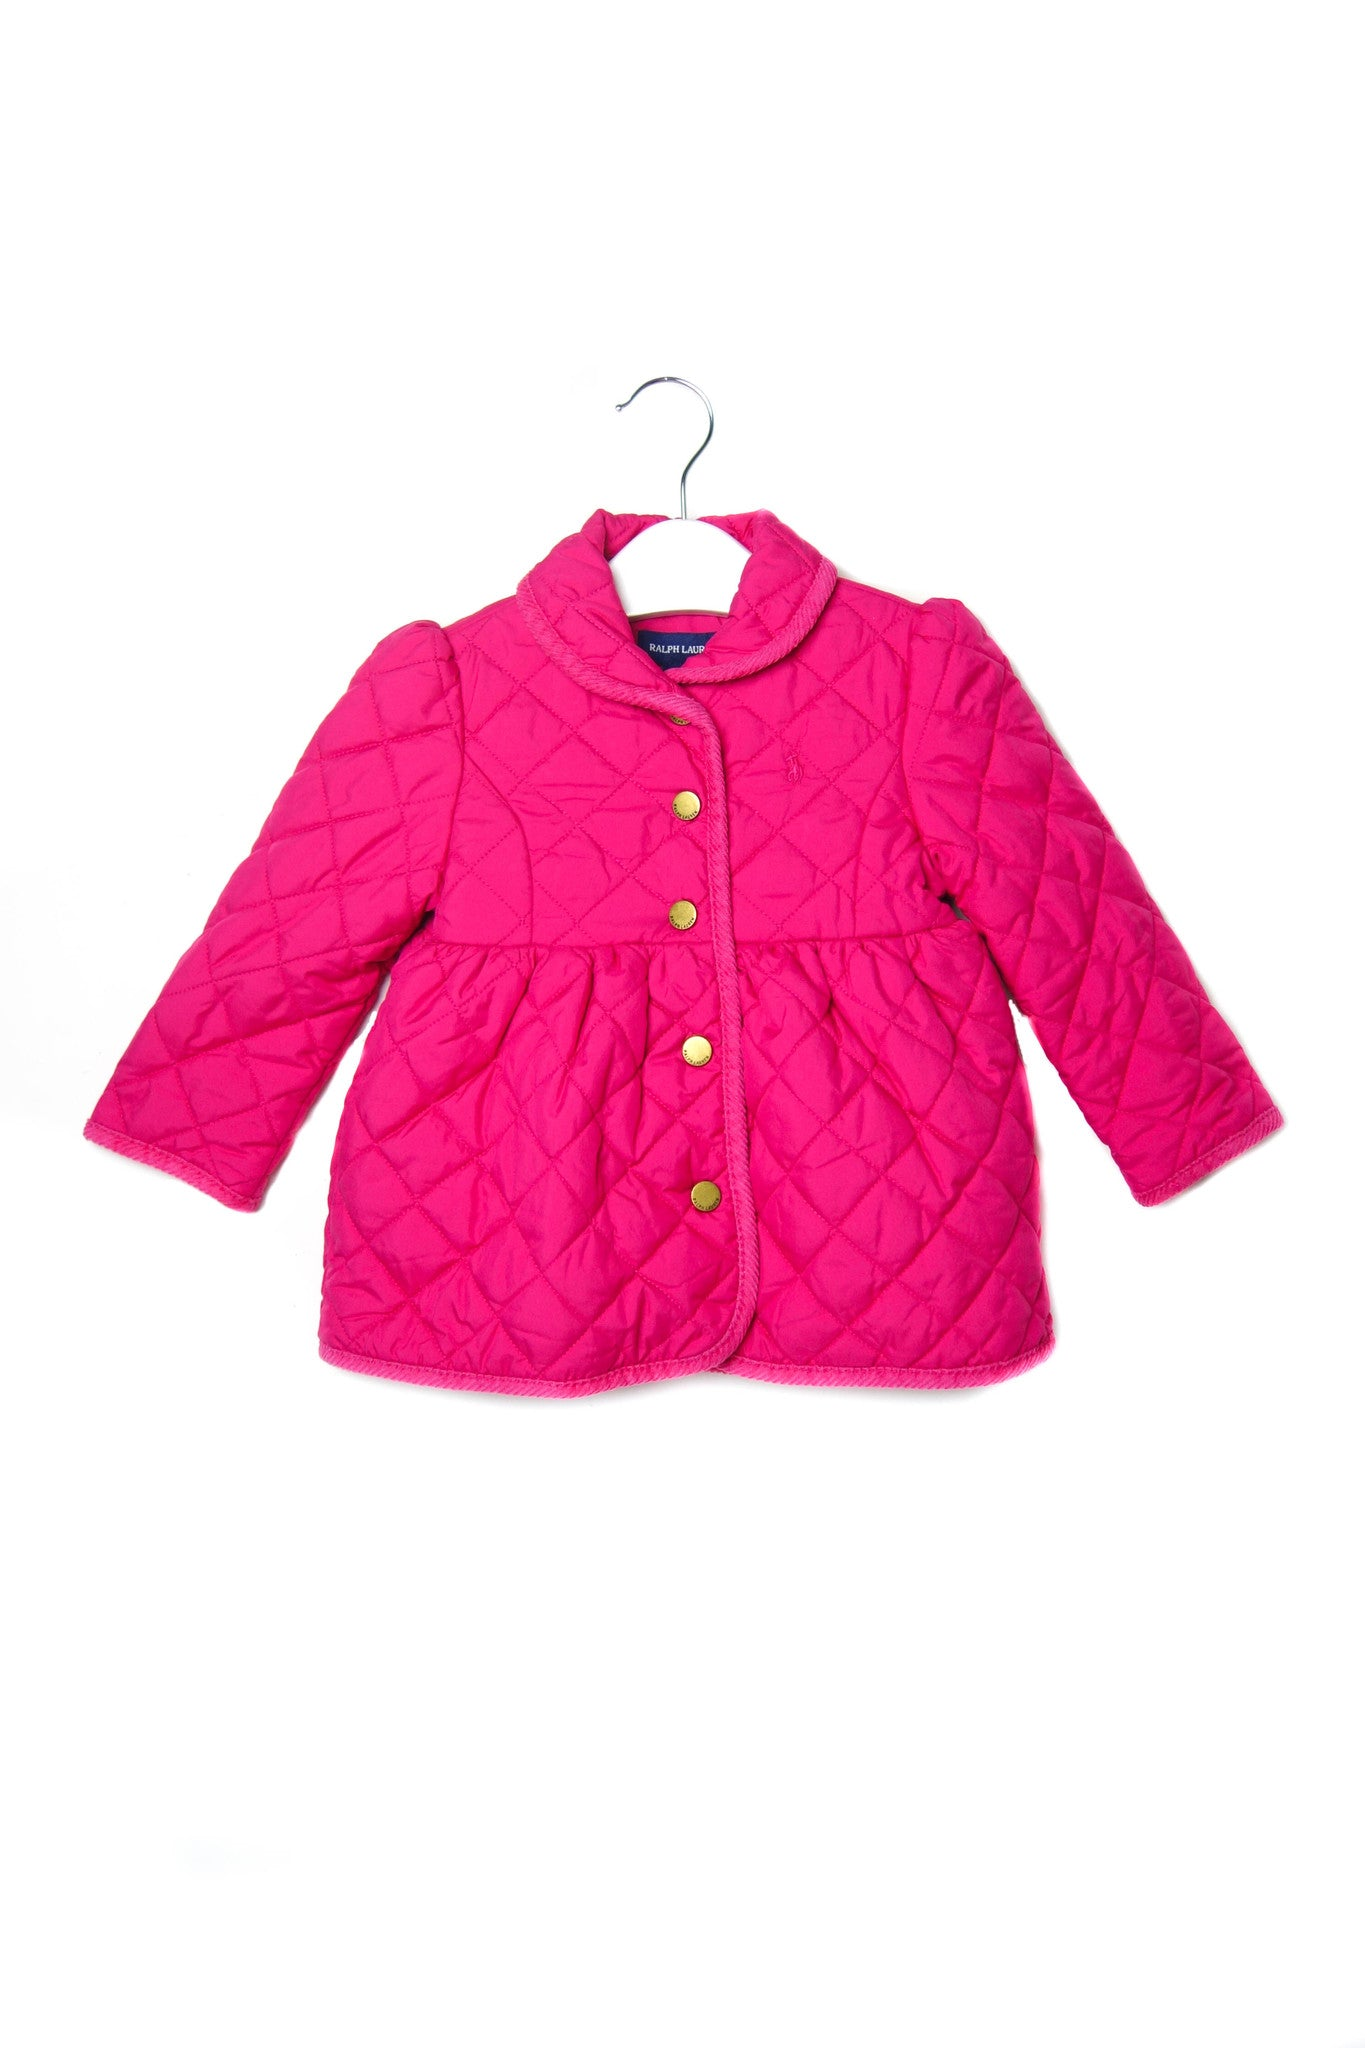 10001439BG Ralph Lauren Baby~Quilted Jacket 18M at Retykle